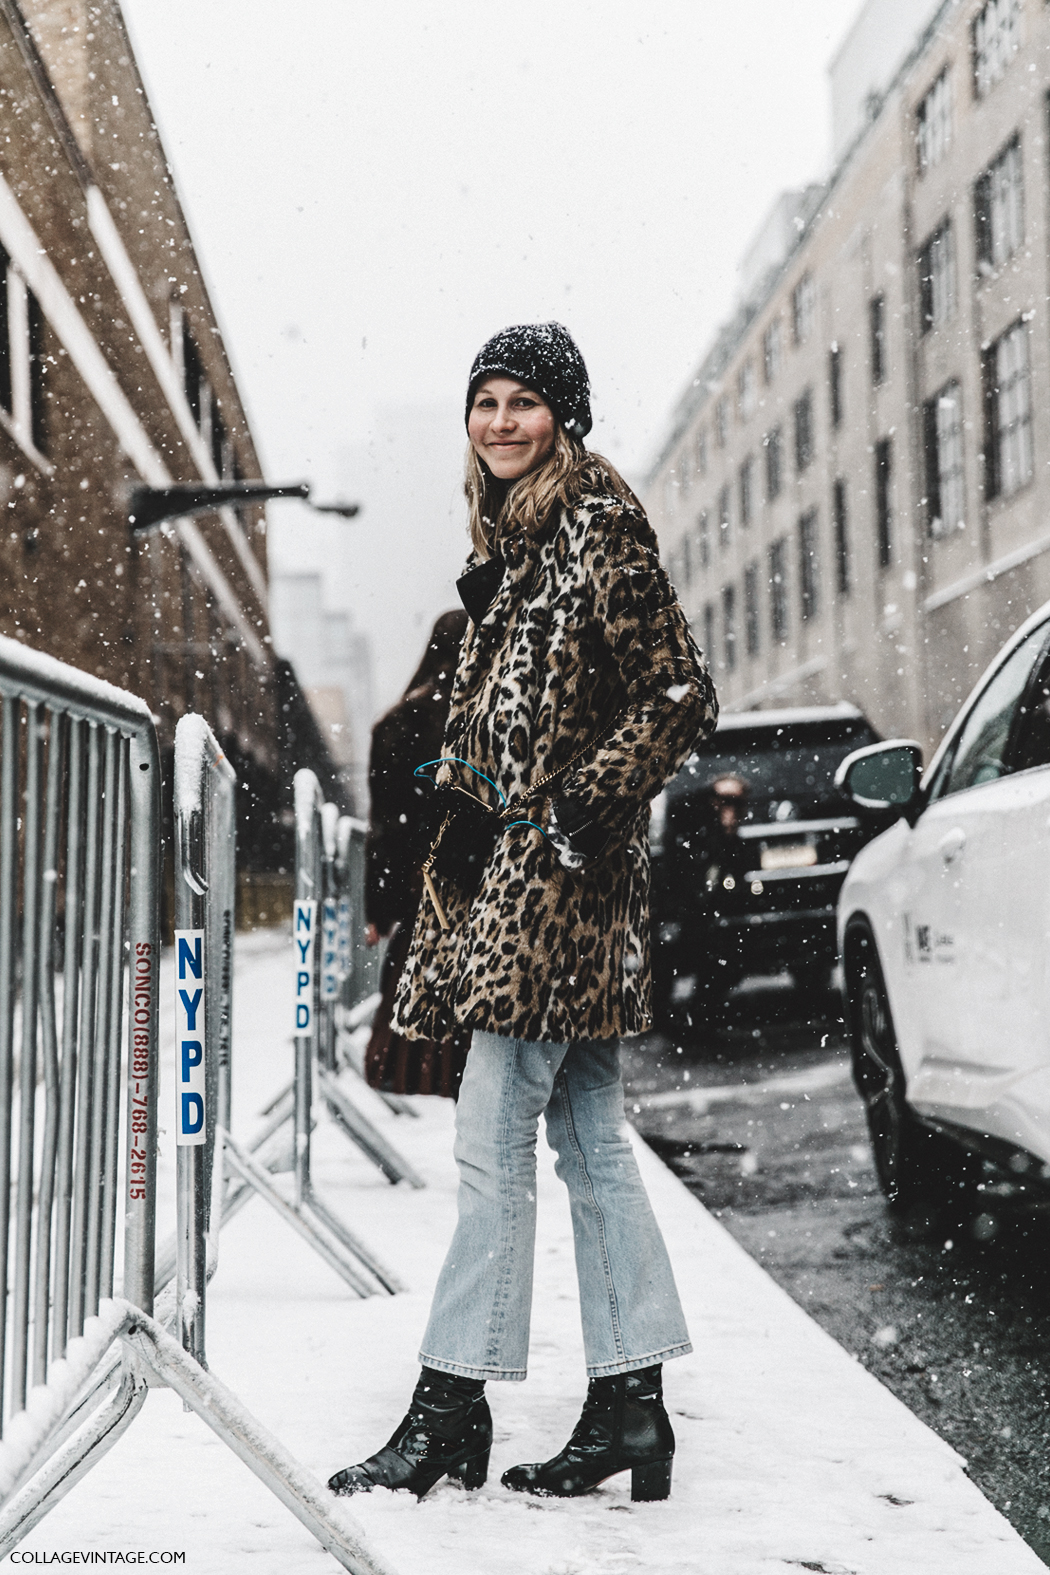 NYFW-New_York_Fashion_Week-Fall_Winter-17-Street_Style-Jessica_Minkoff-Leopard_Coat-Beanie-1